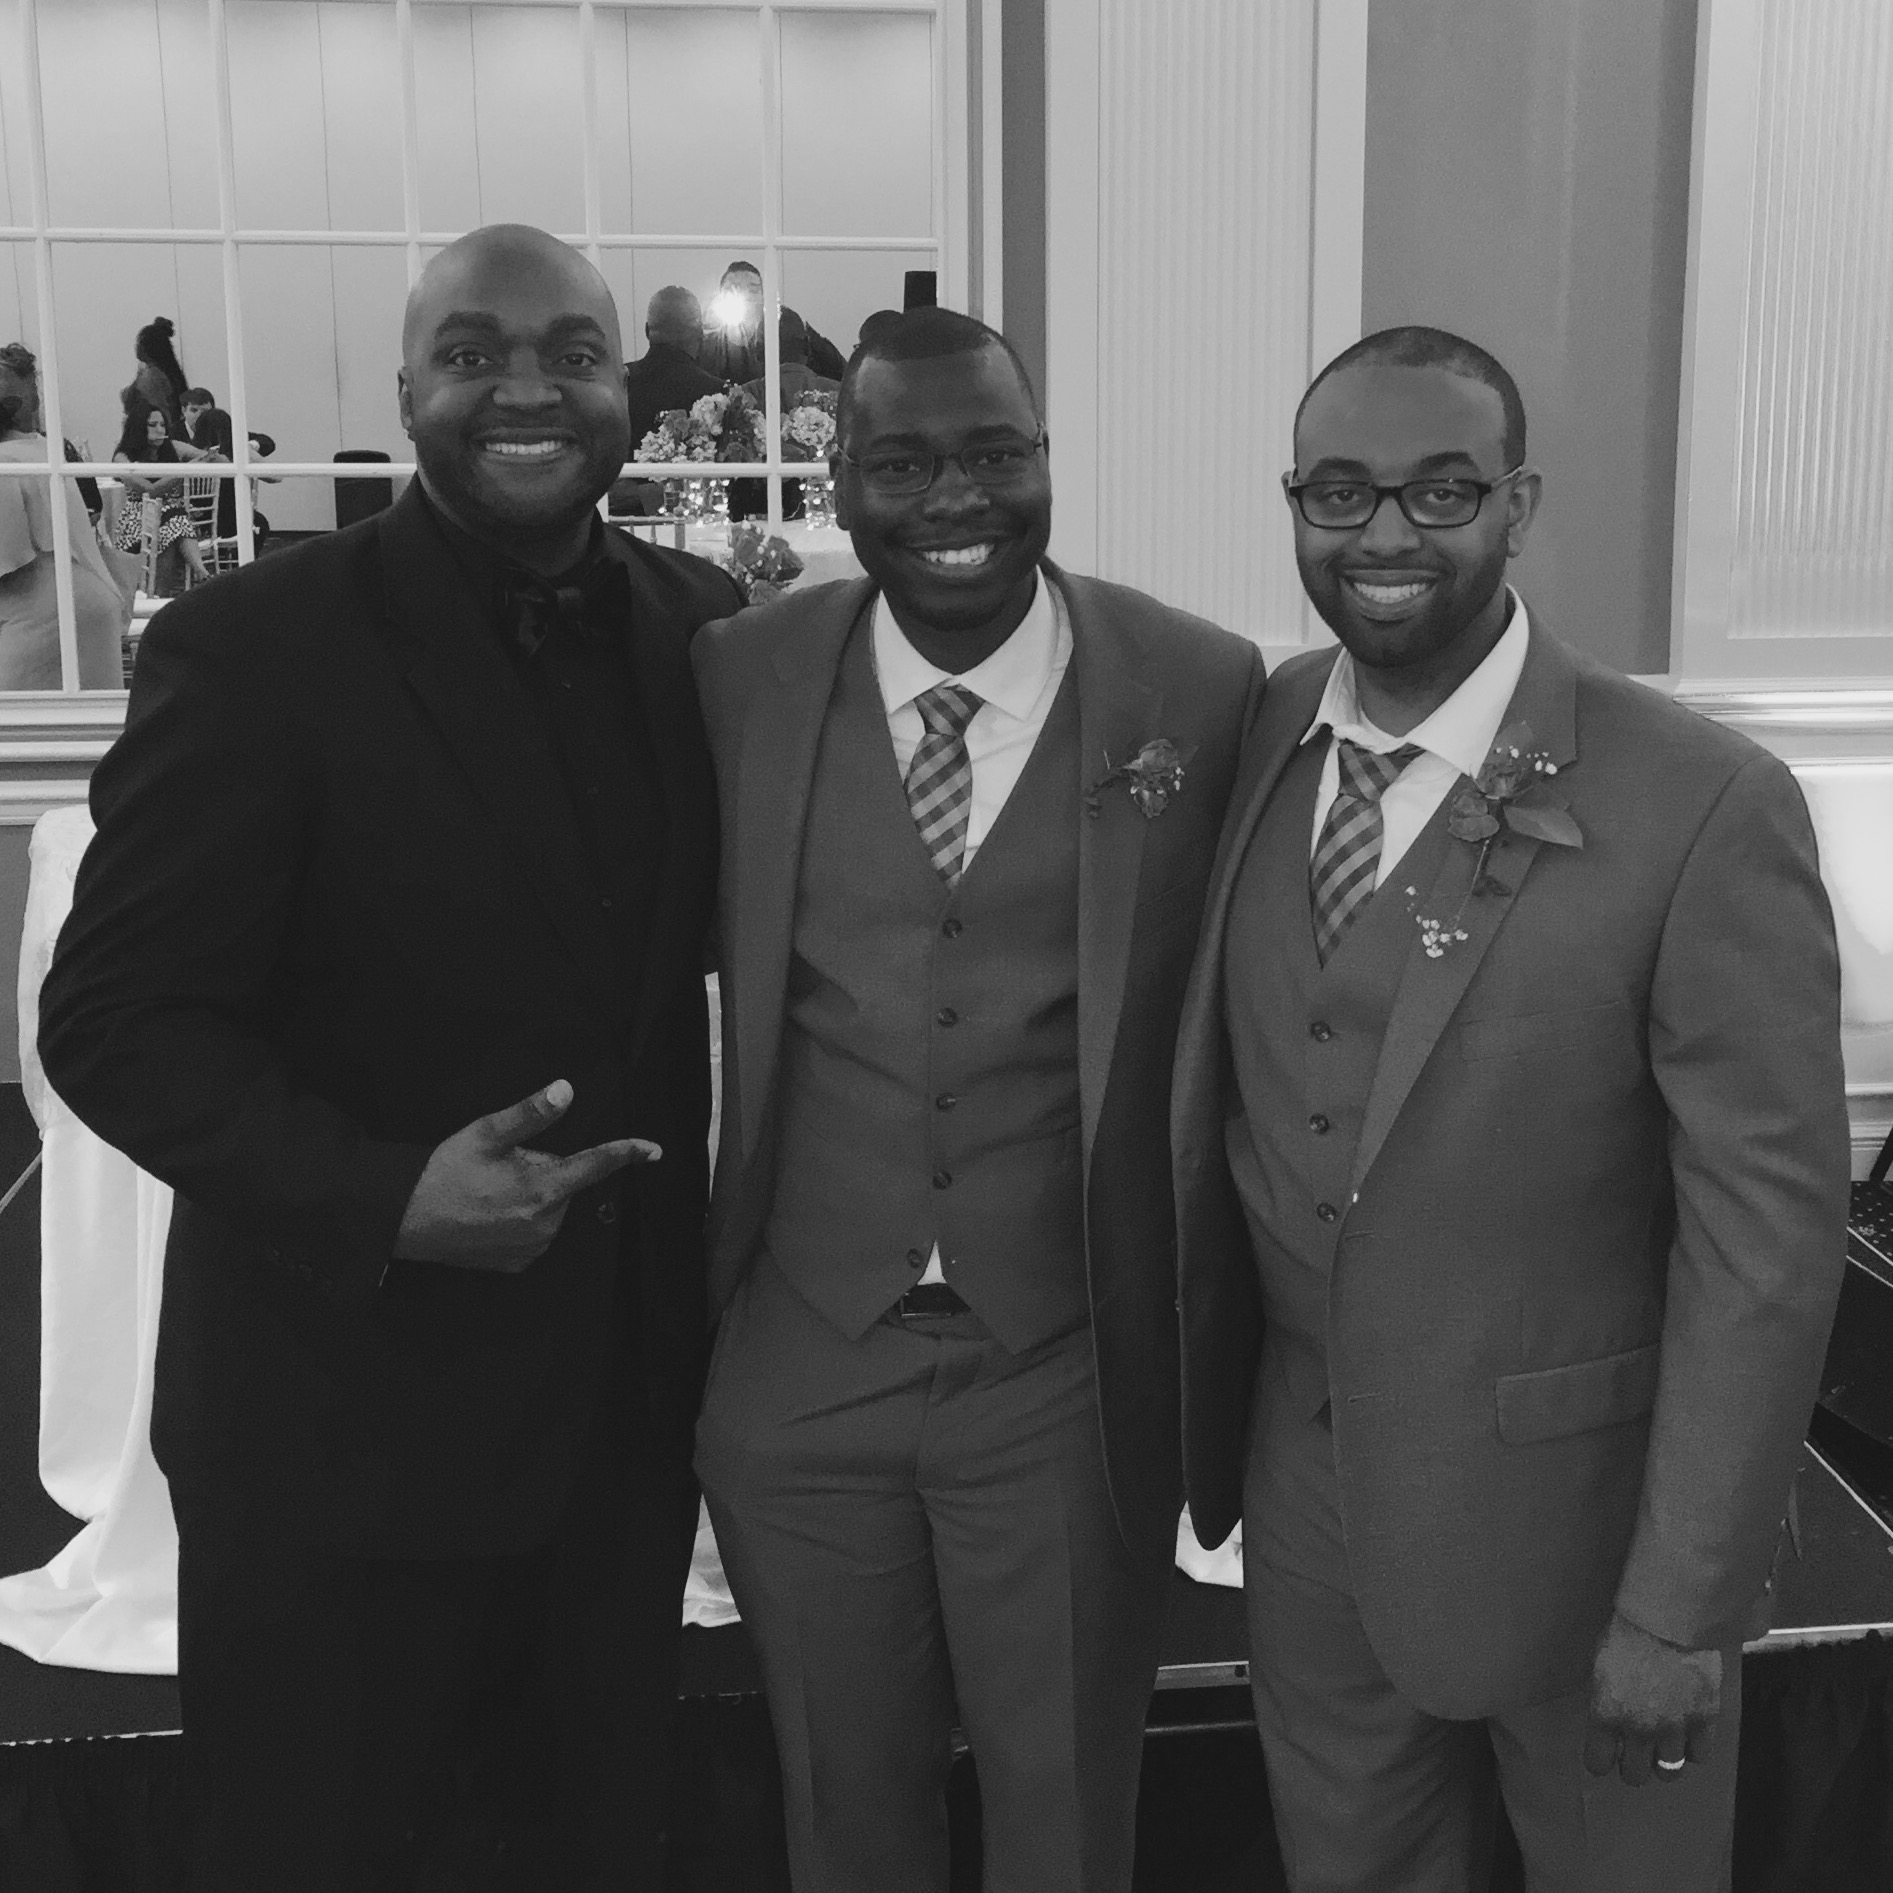 DJ D JONES CHICAGO HOUSTON ATLANTA ST LOUIS INDIANAPOLIS MINNEAPOLIS LGBTQ WEDDING DJ.jpg